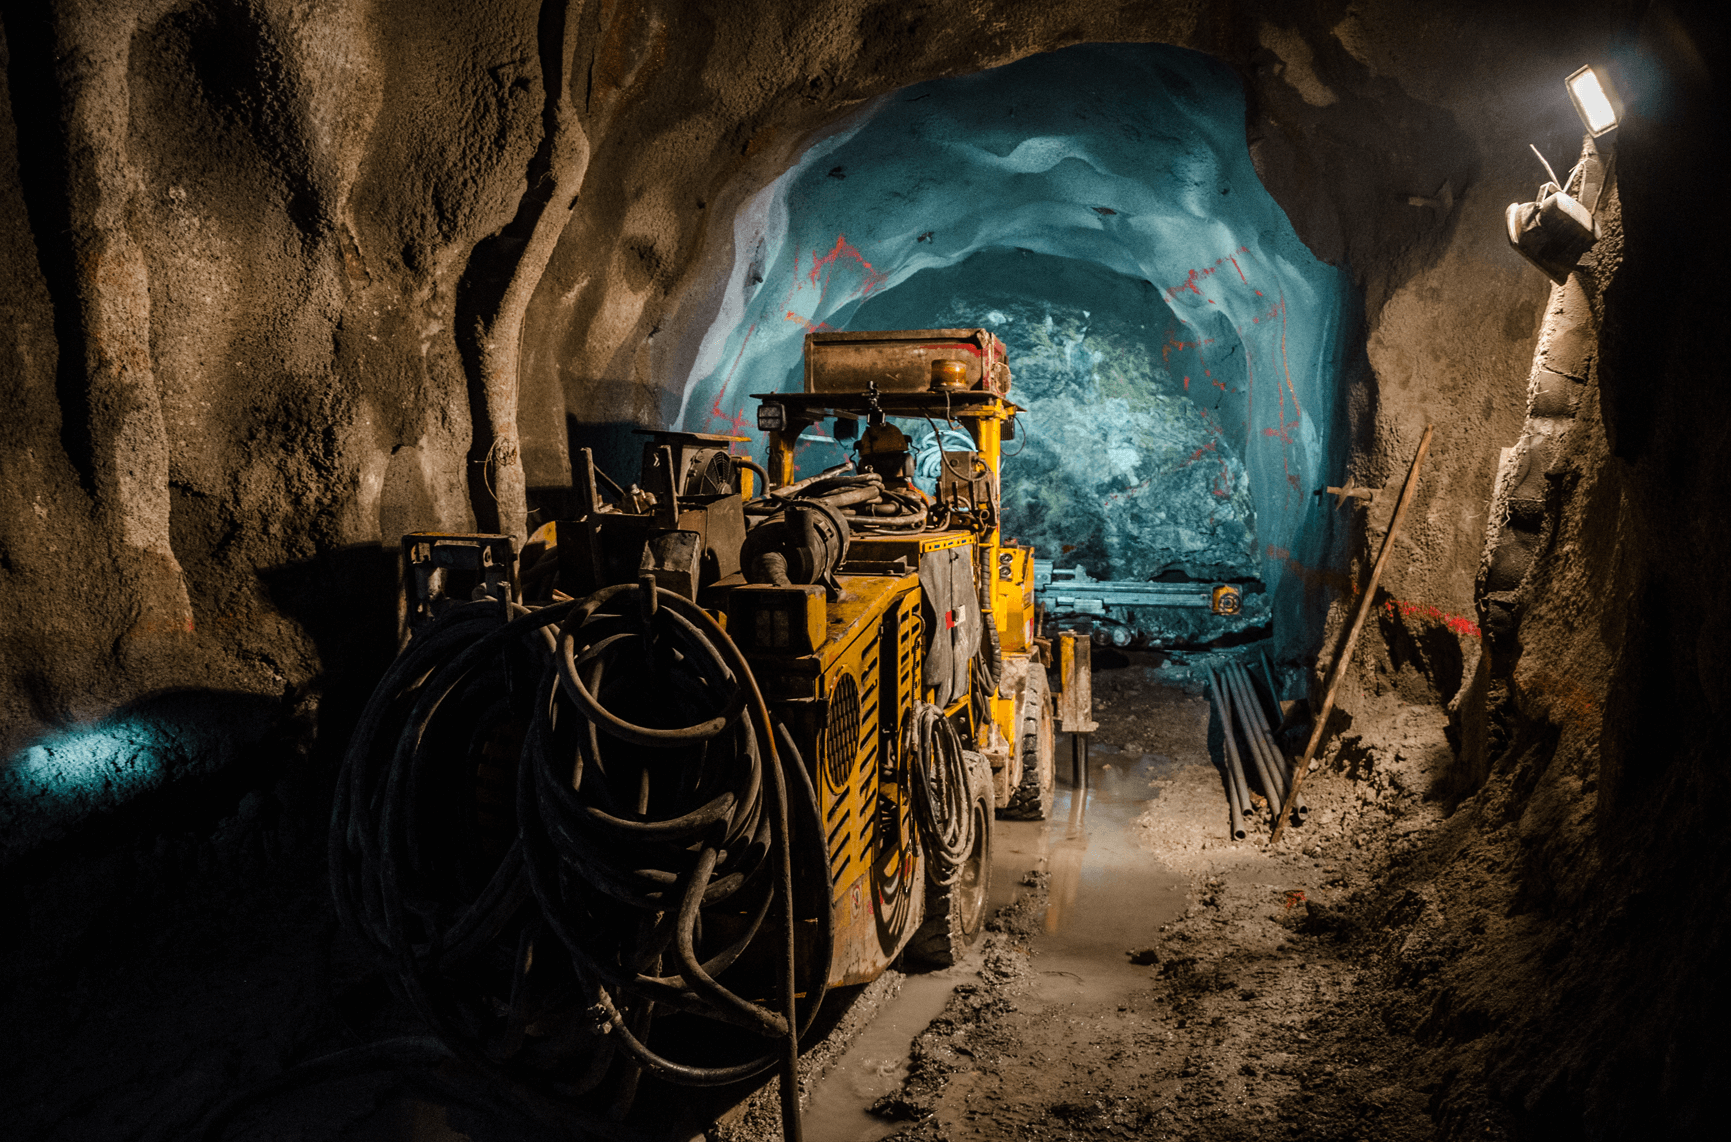 sensemetrics Moves into Underground Mining Market in Partnership with Yieldpoint